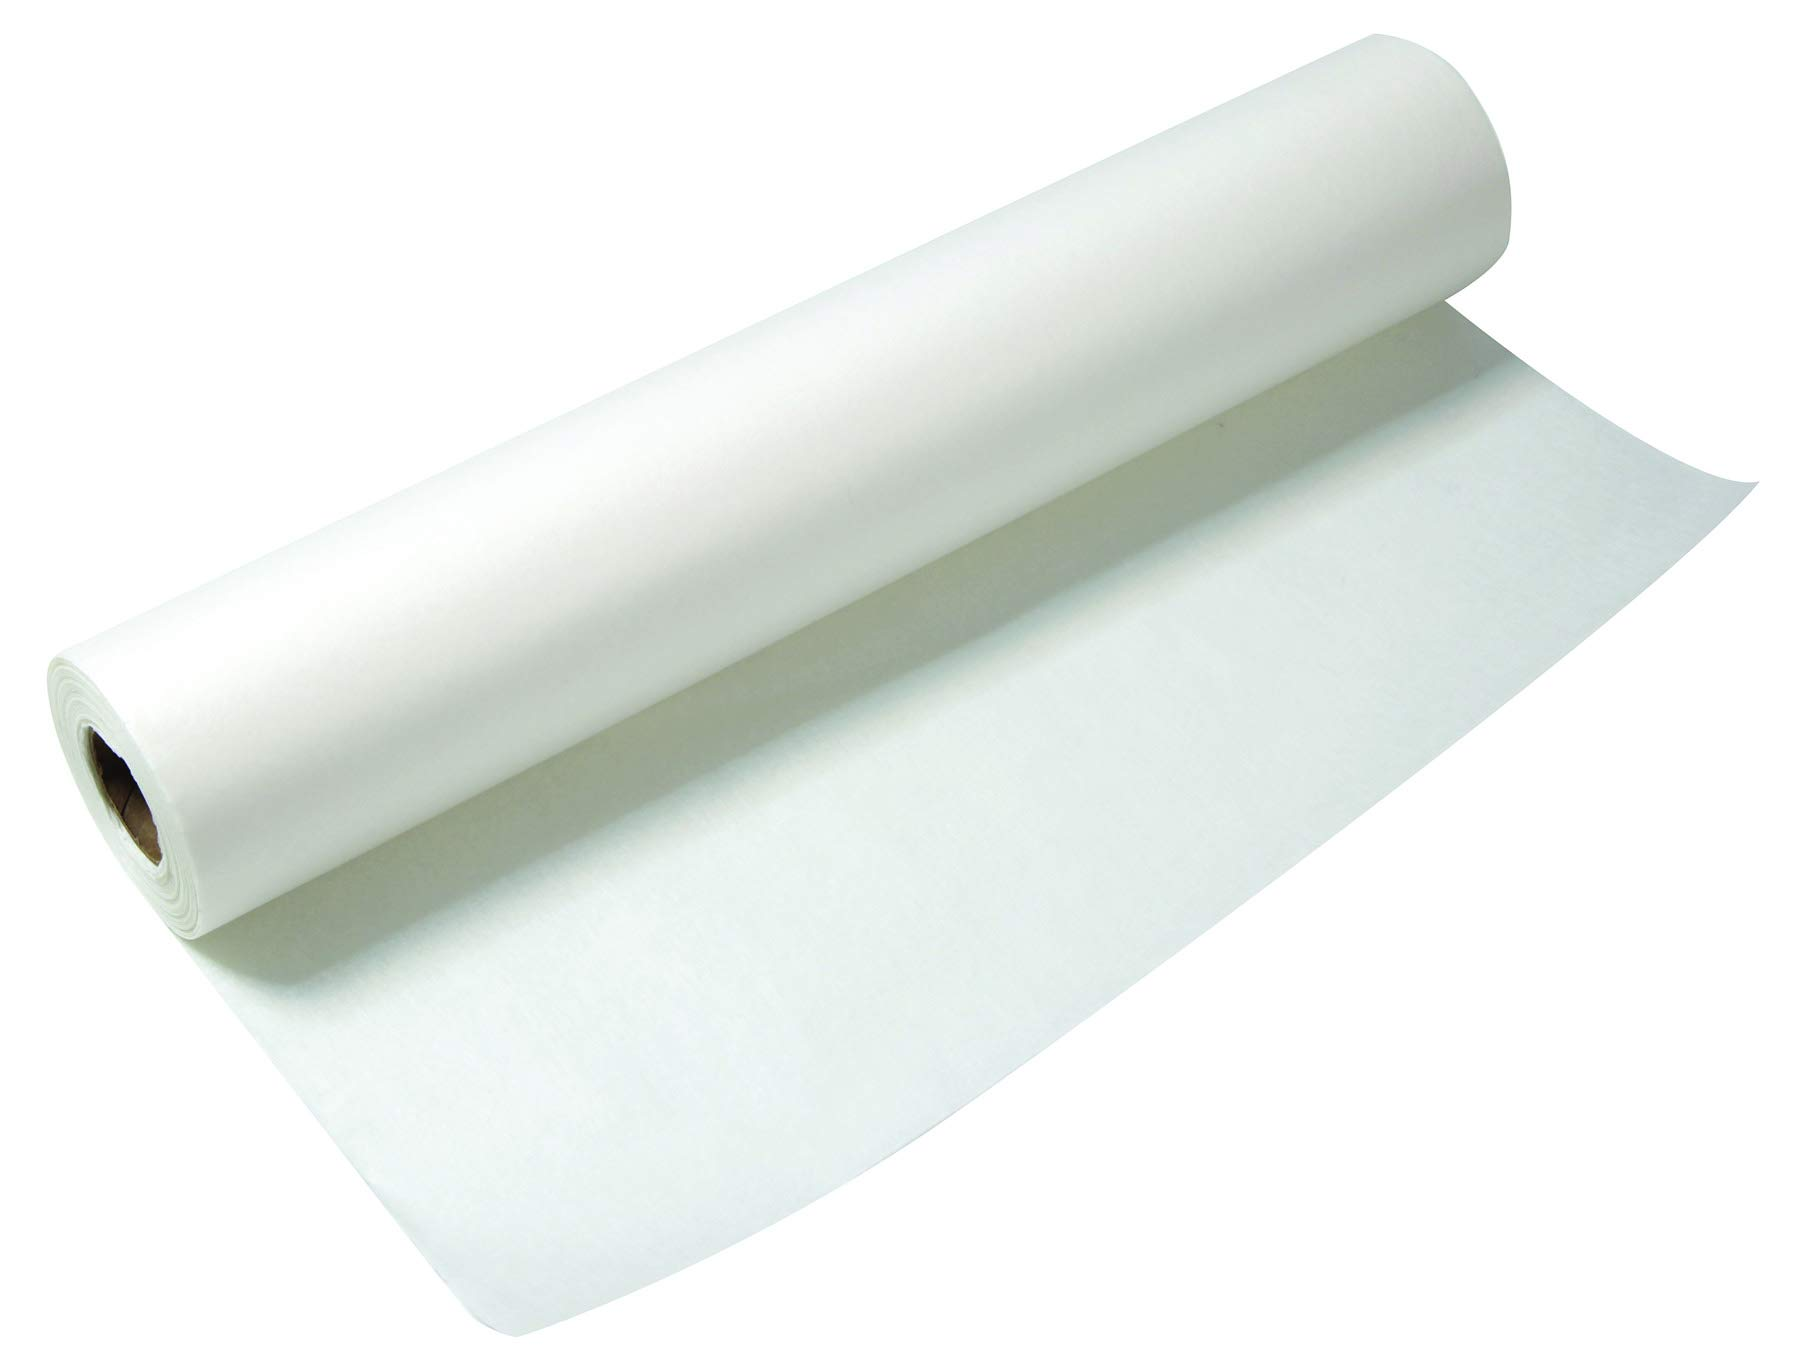 Alvin, Lightweight, Tracing Paper Roll, White - 30 x 50 Yard by Alvin